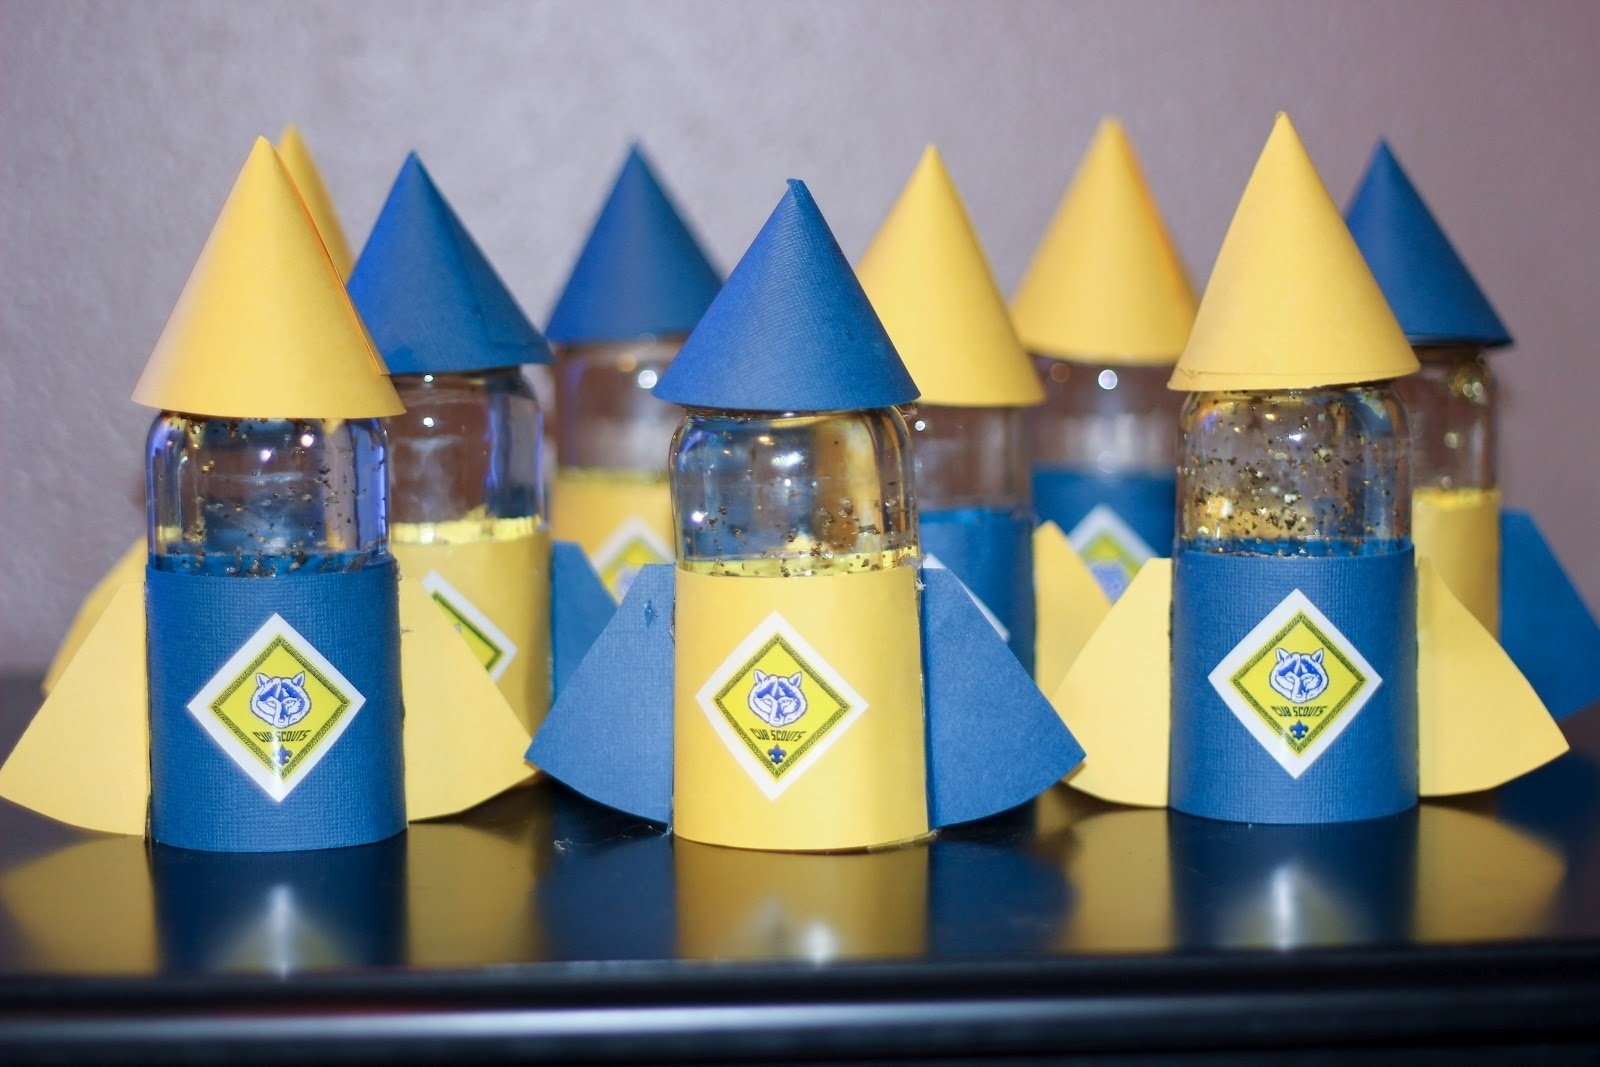 10 Stylish Cub Scout Blue And Gold Banquet Ideas boy scout blue and gold banquet centerpiece ideas blue and gold 2020